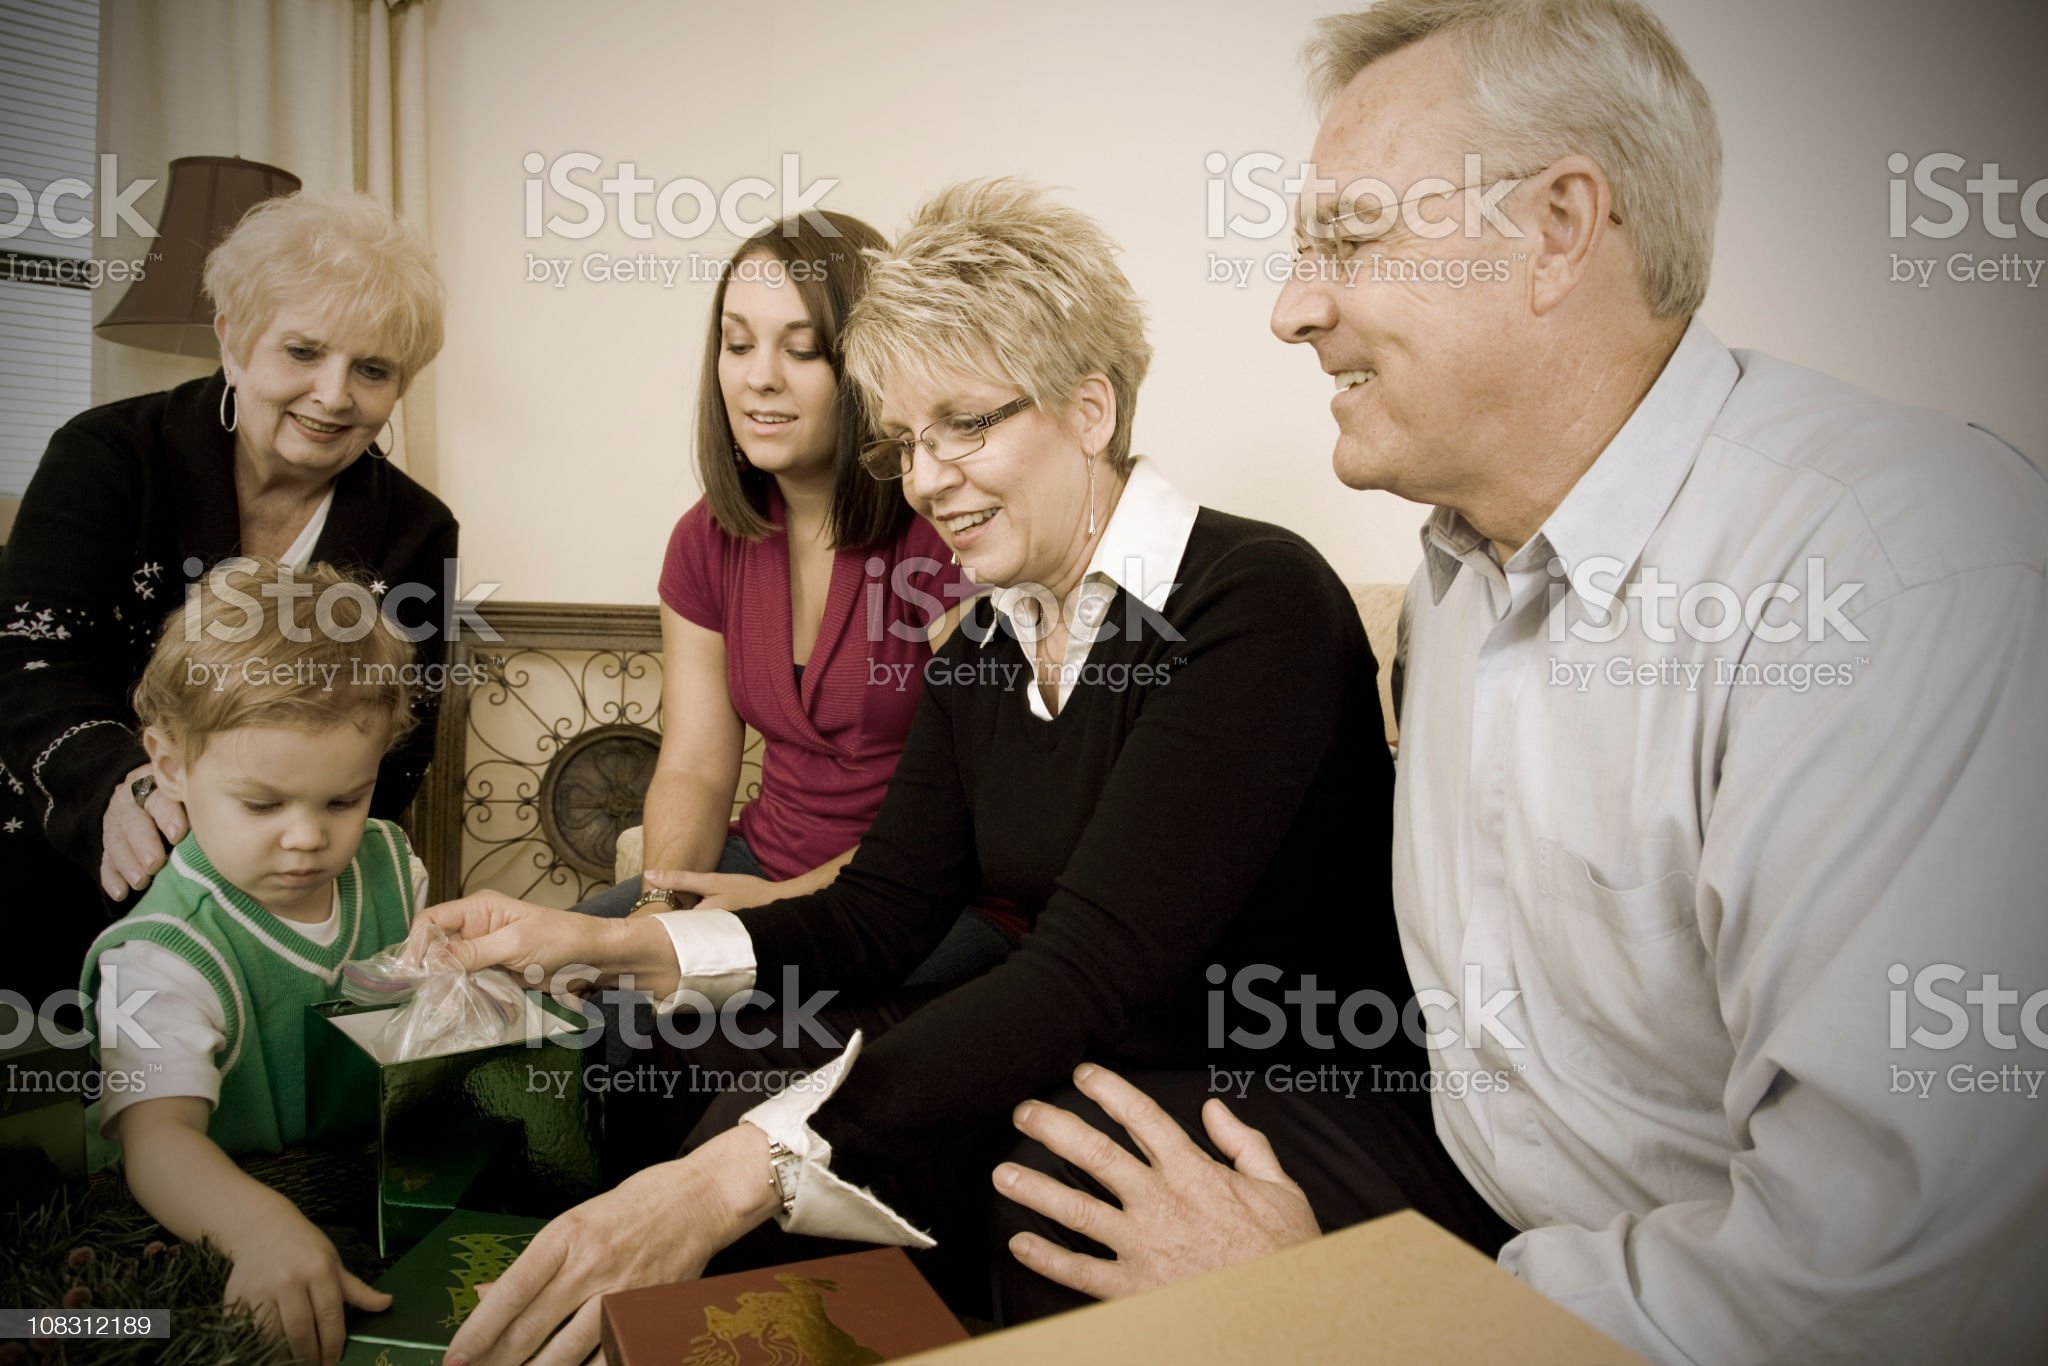 Vintage Look of Multi-Generational Family at Christmas royalty-free stock photo